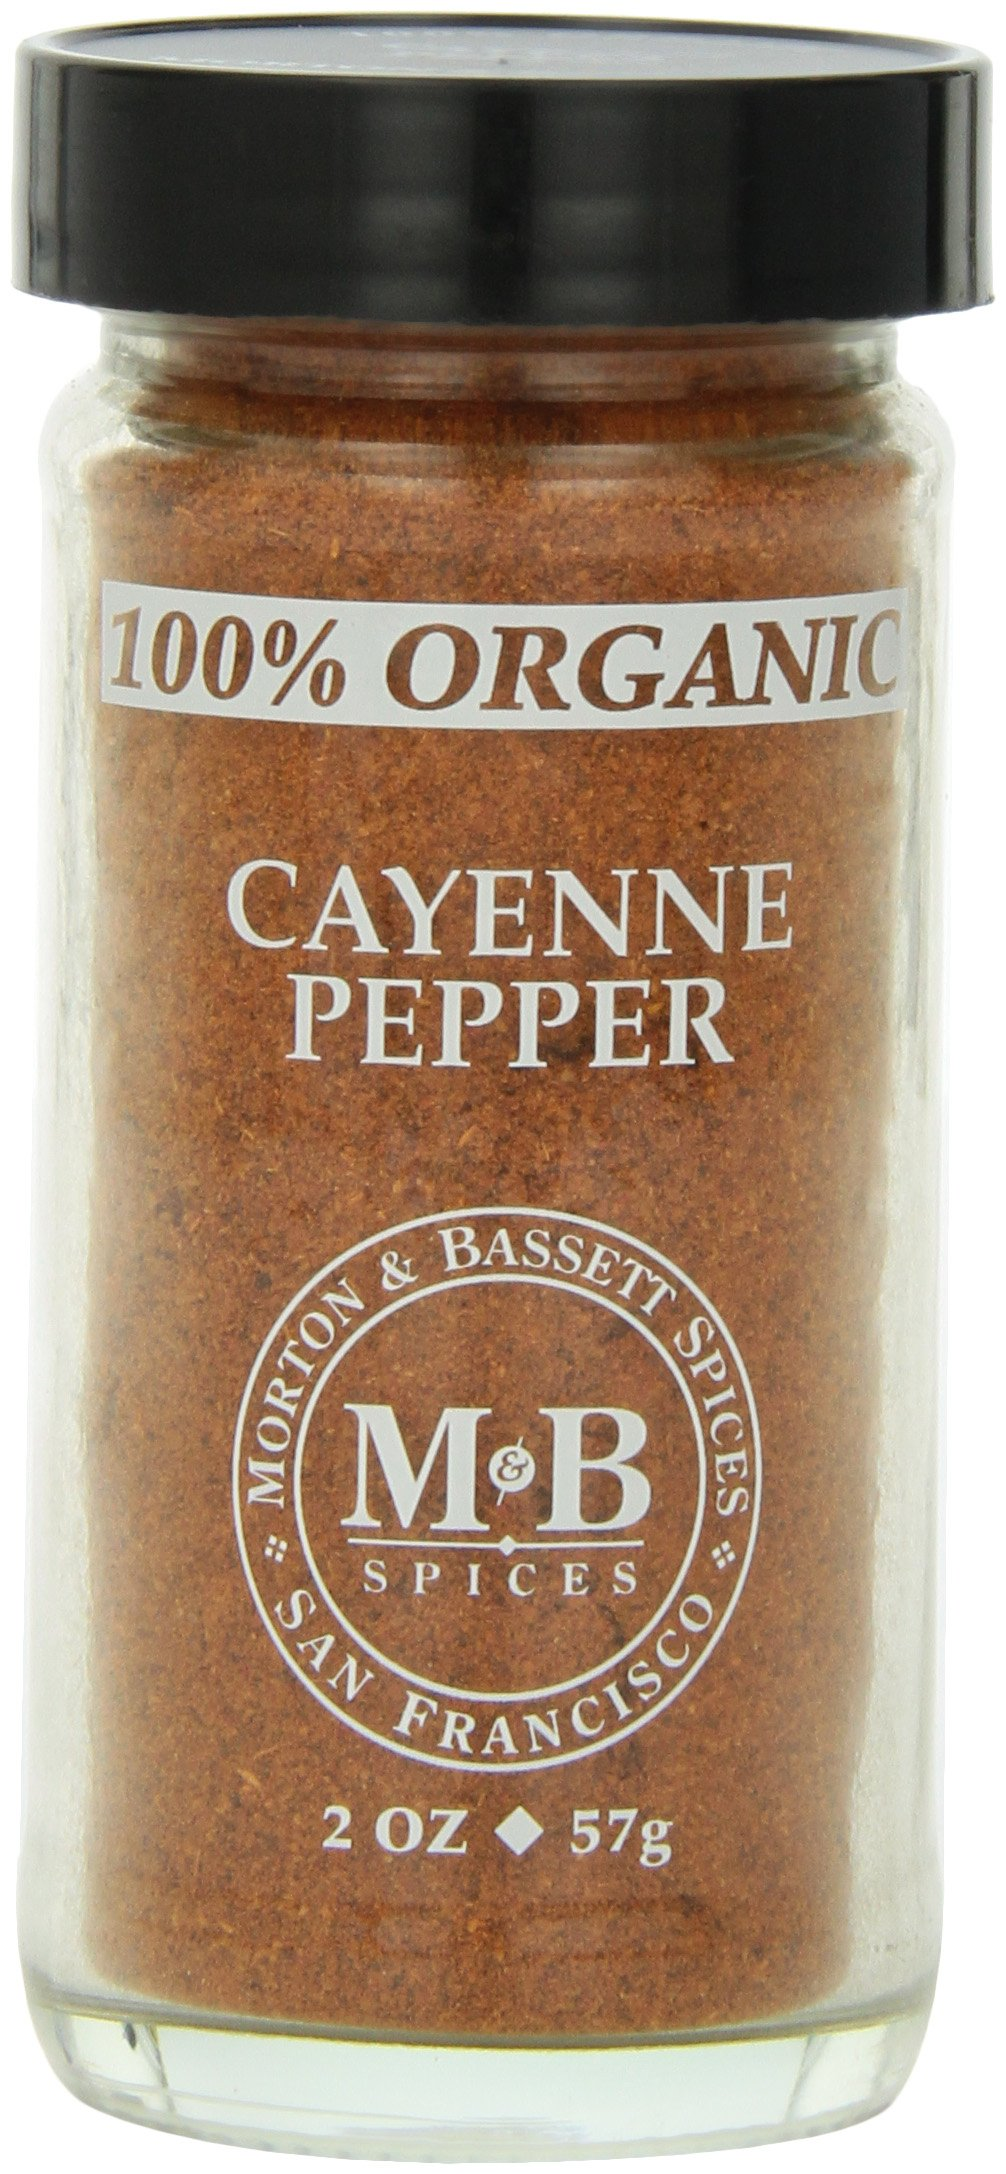 Morton & Basset Spices, Organic Cayenne Pepper, 2 Ounce (Pack of 3)